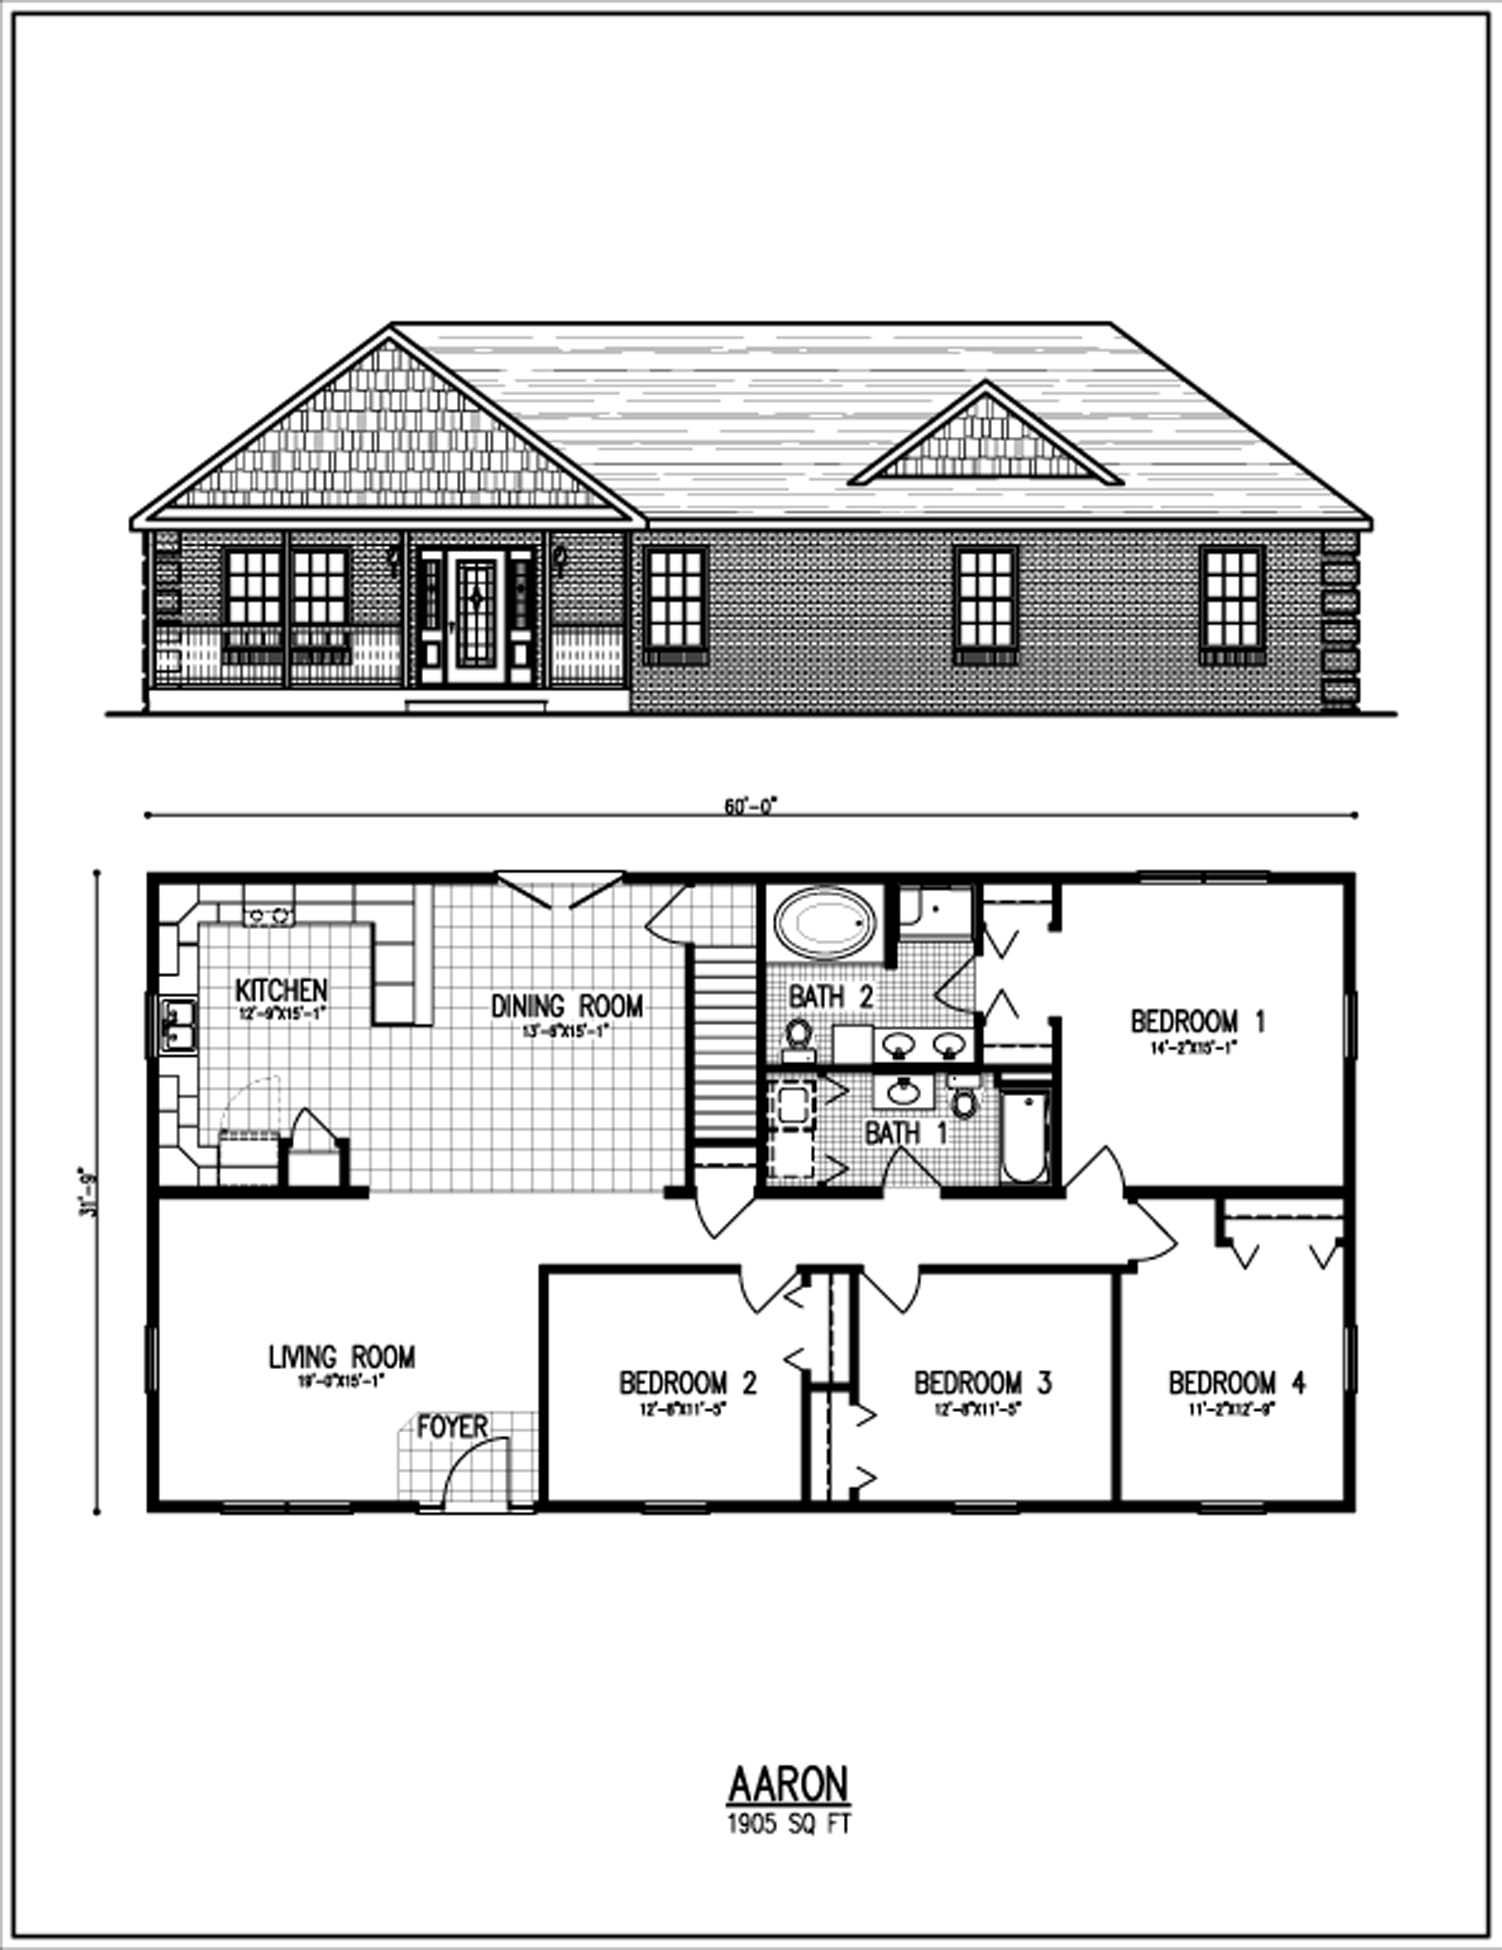 All american homes floorplan center staffordcape Ranch home plans